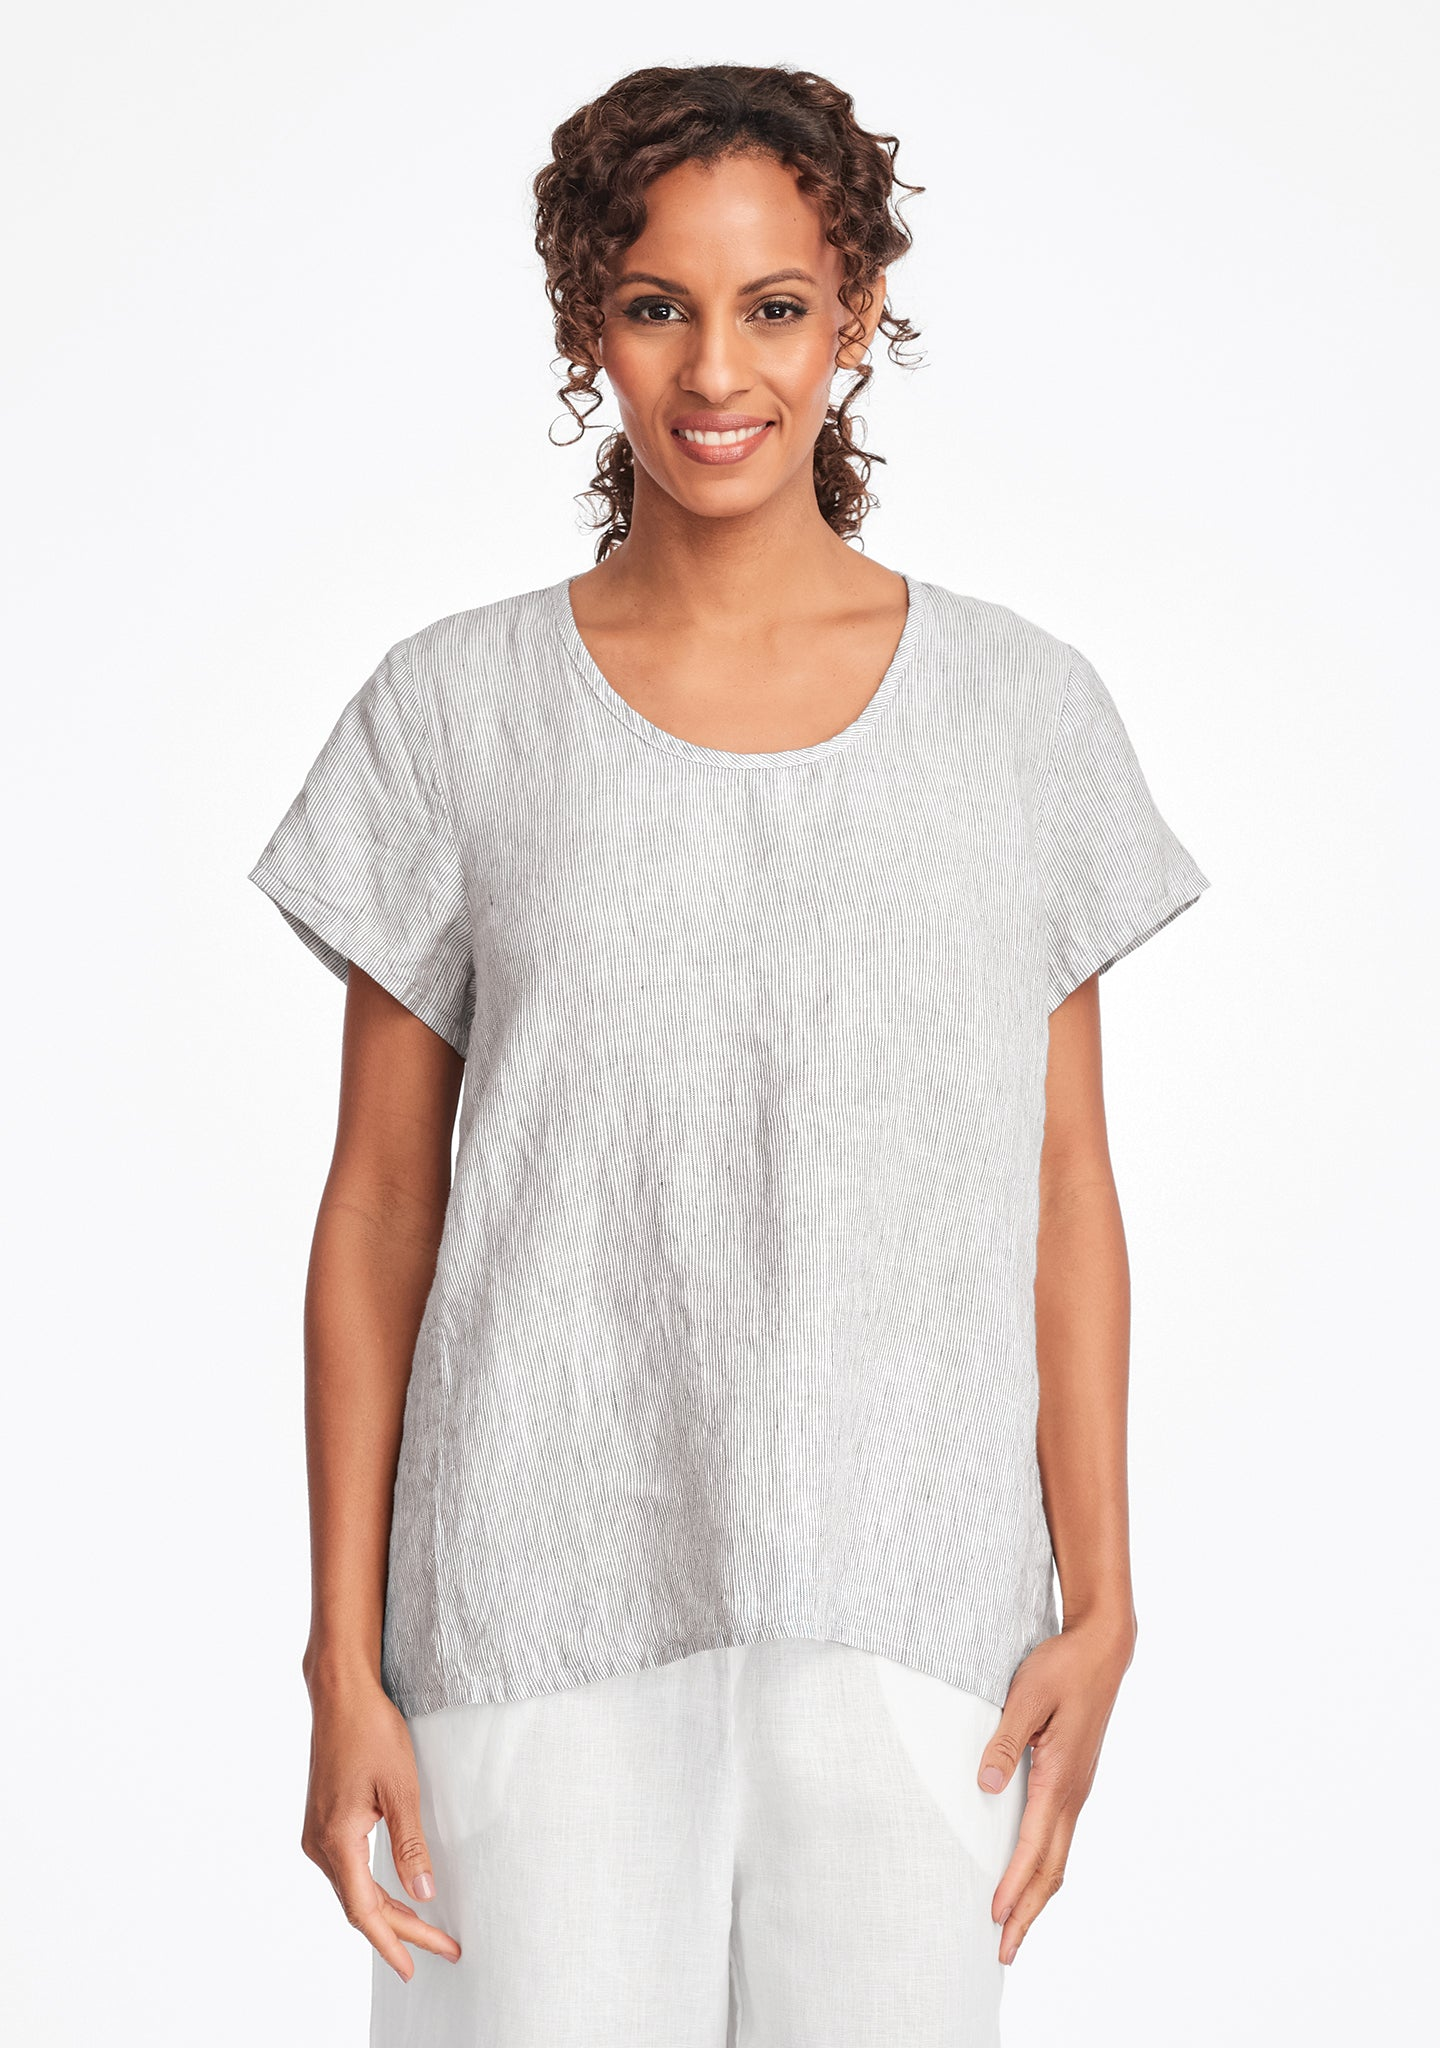 weightless tee linen t shirt grey